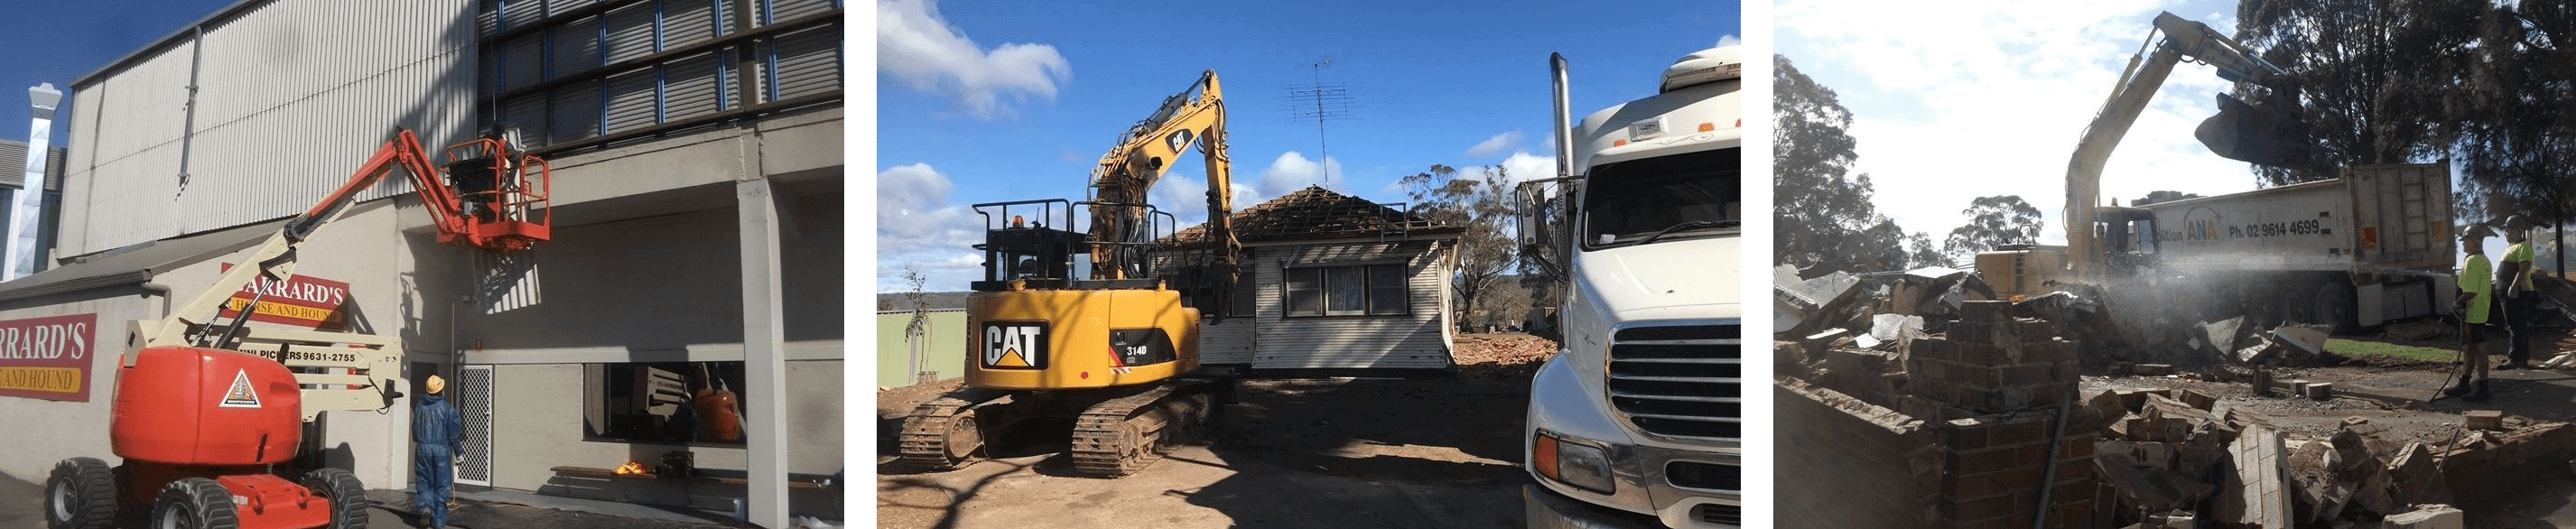 Property and Home Demolitions in Sydney with ANA Demolitions